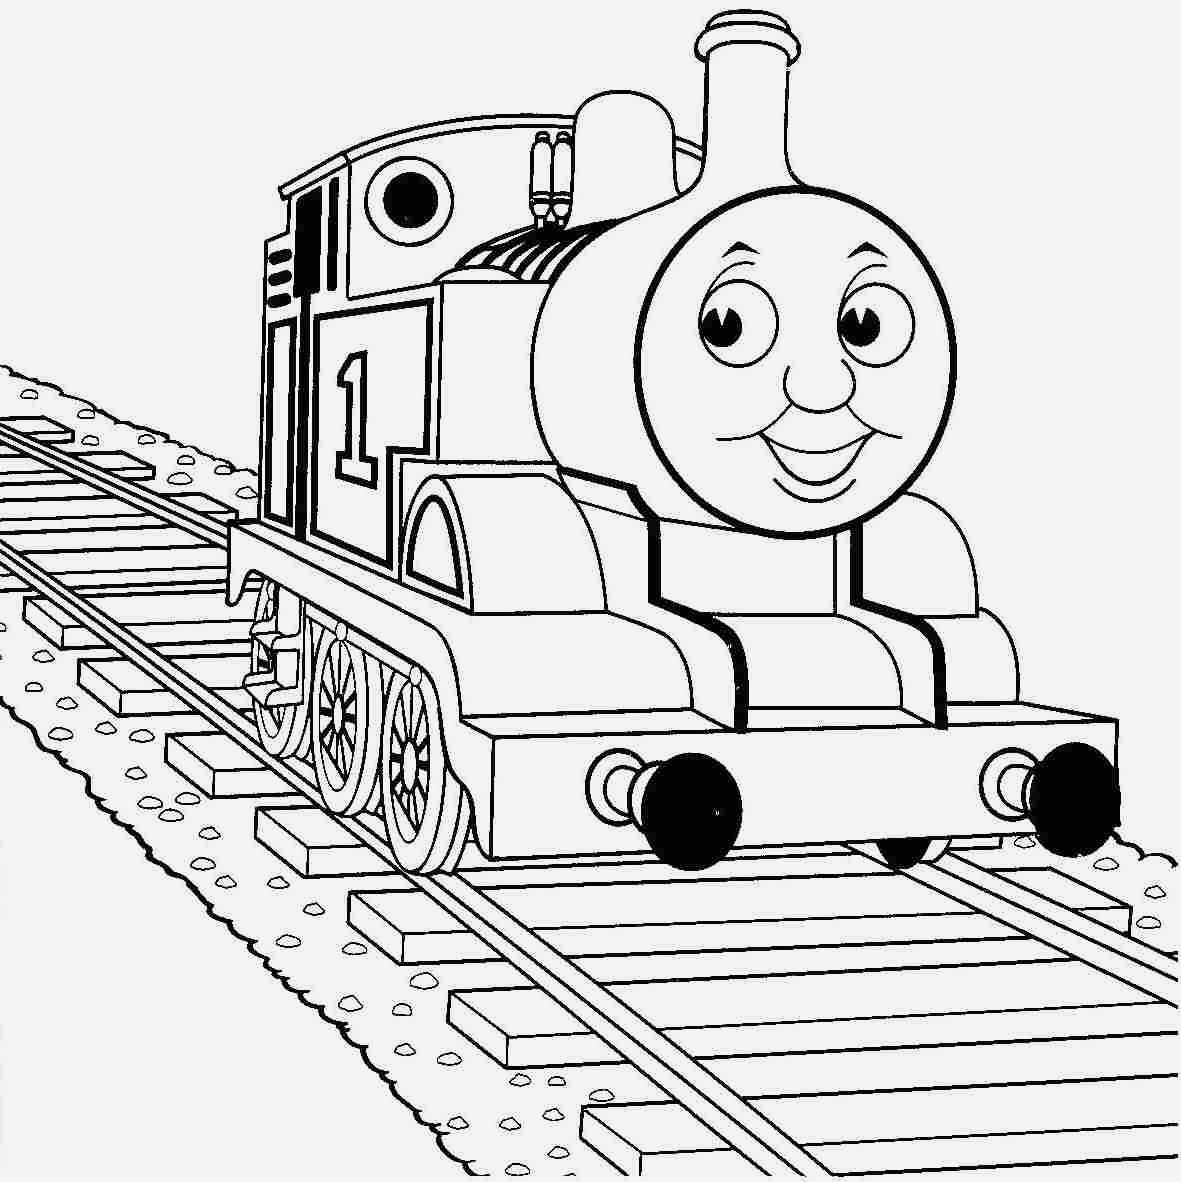 Train coloring pages printable free thomas the train coloring pages best easy 41 coloring pages